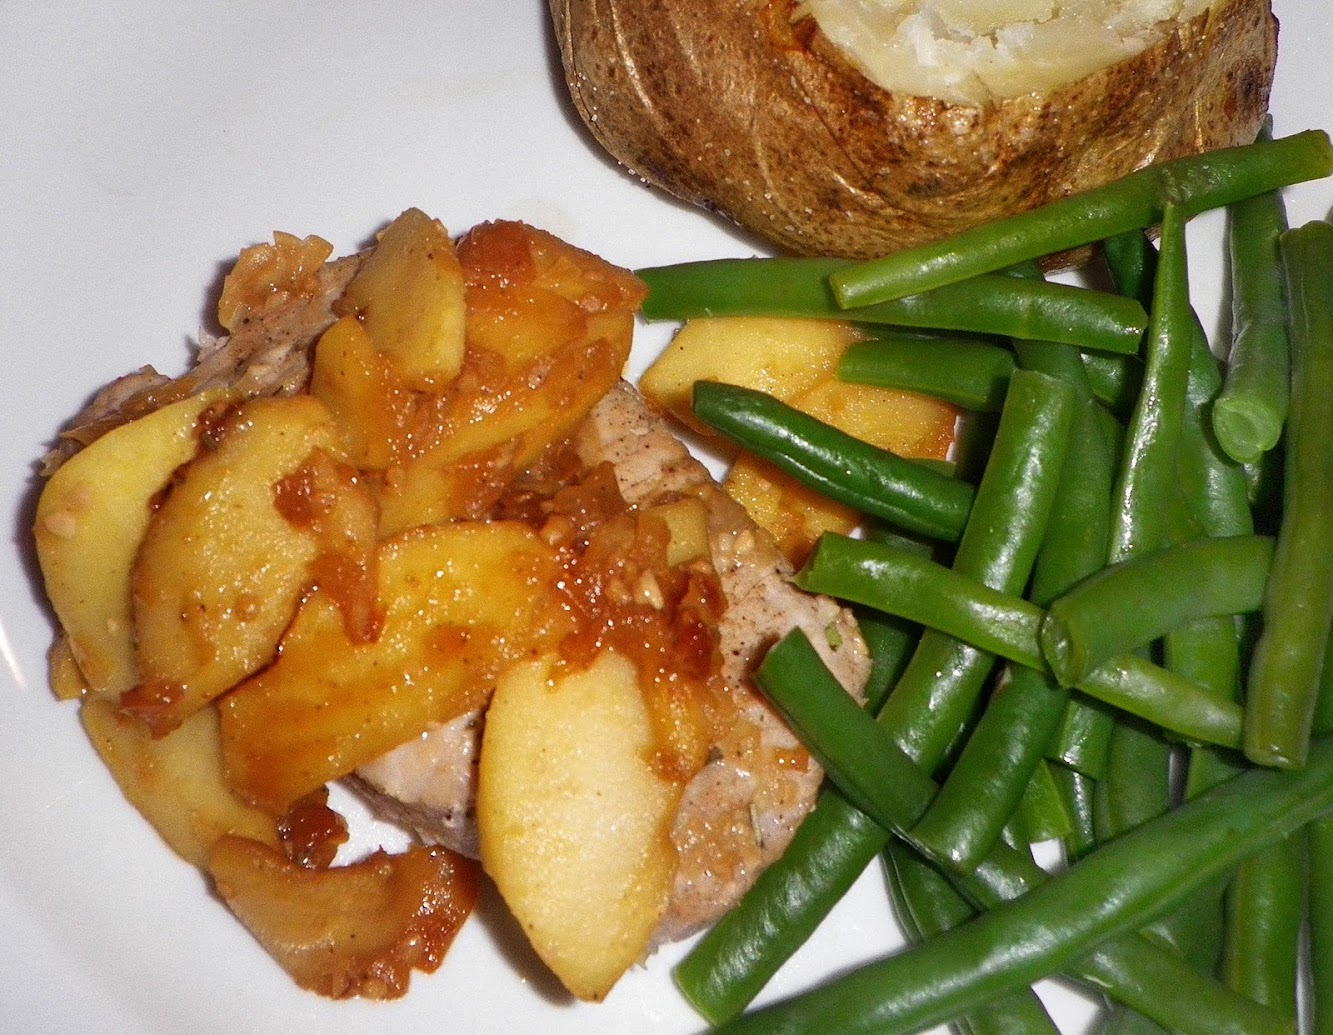 Sauteed Pork Chops and Apples